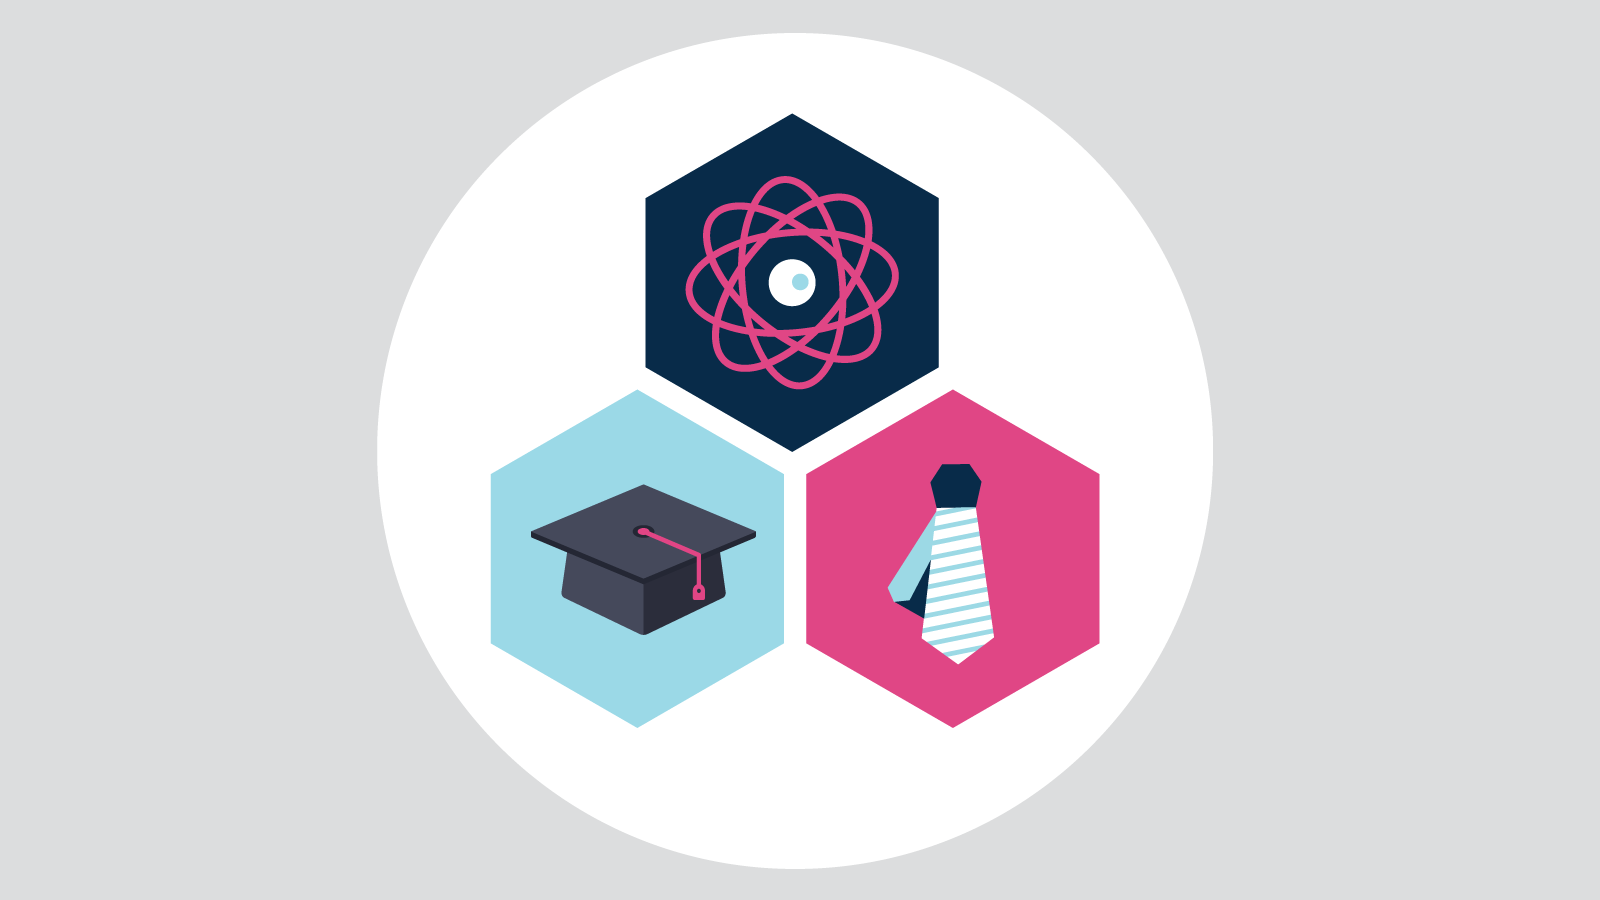 Illustration of tie, graduation cap, and atom each inside a coloured hexagon within white circle on grey background.